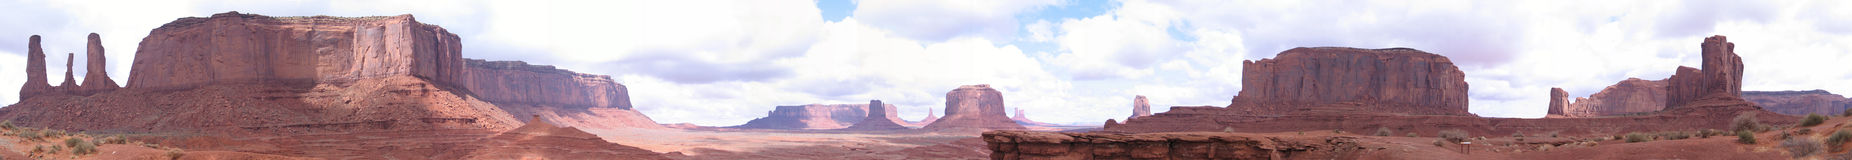 Monument Valley, Utah. This image was taken near Monument Valley, Utah Stock Image